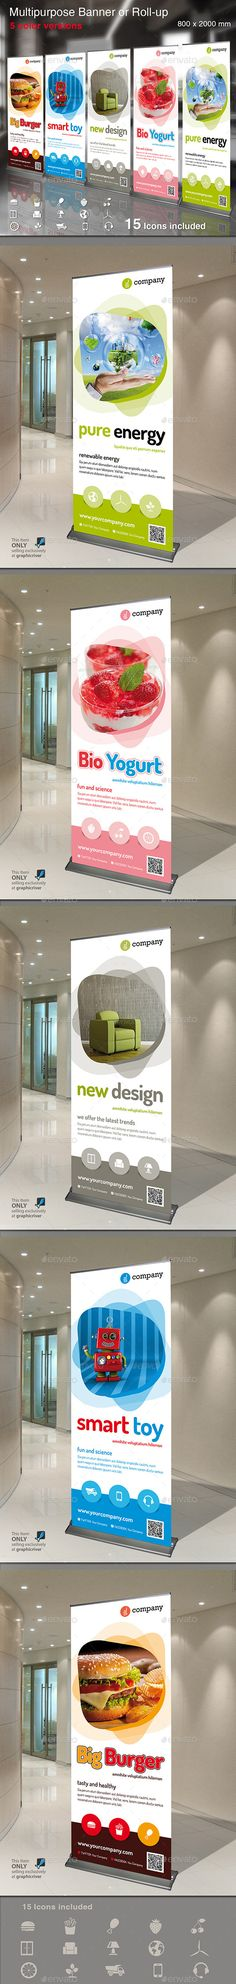 Multipurpose Banner or Rollup Template PSD #design Download: http://graphicriver.net/item/multipurpose-banner-or-rollup/13377280?ref=ksioks